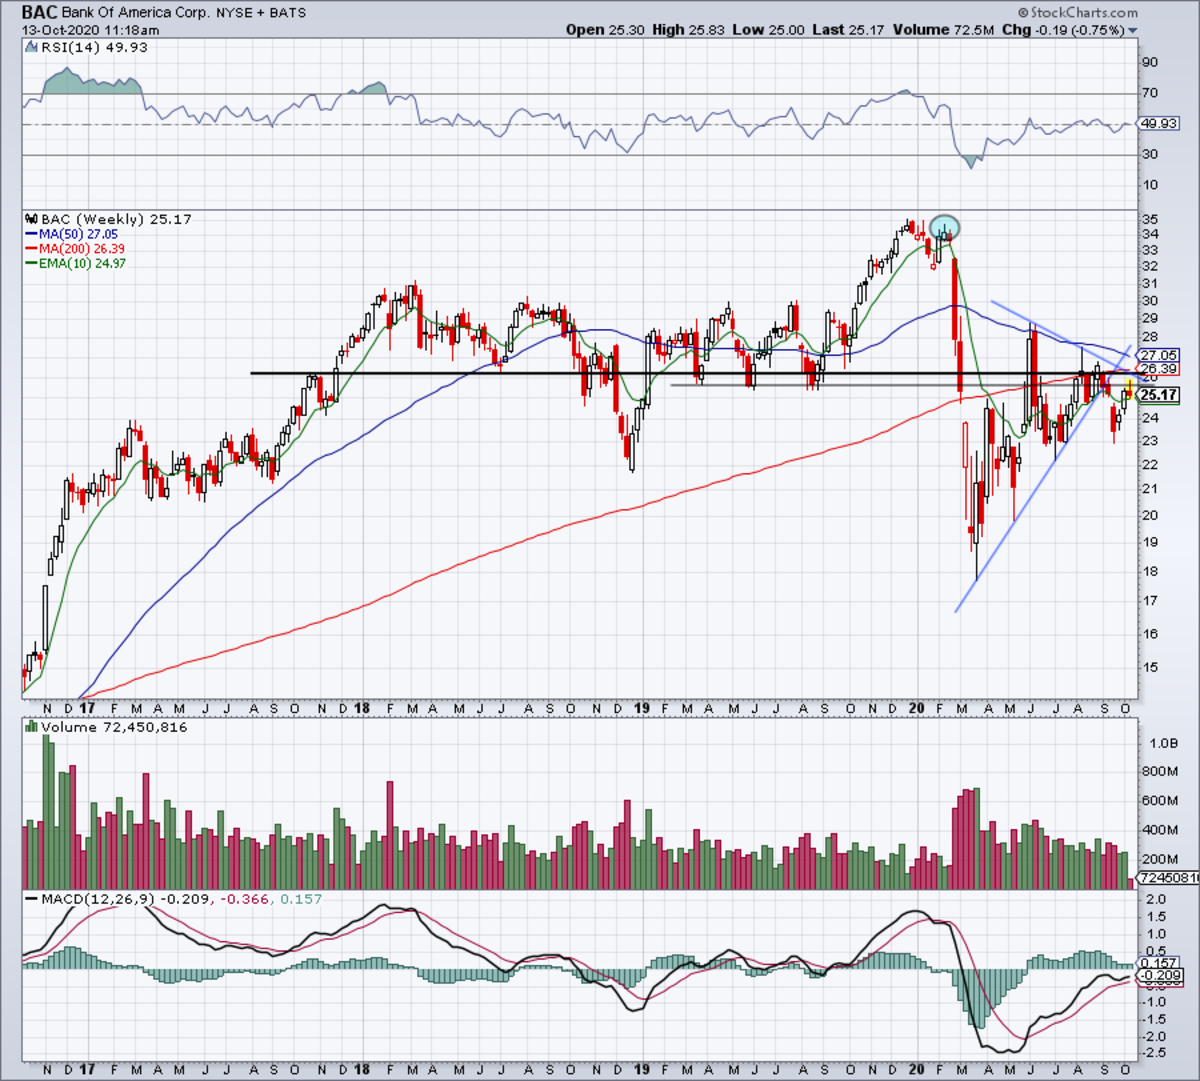 Weekly chart of Bank of America stock.